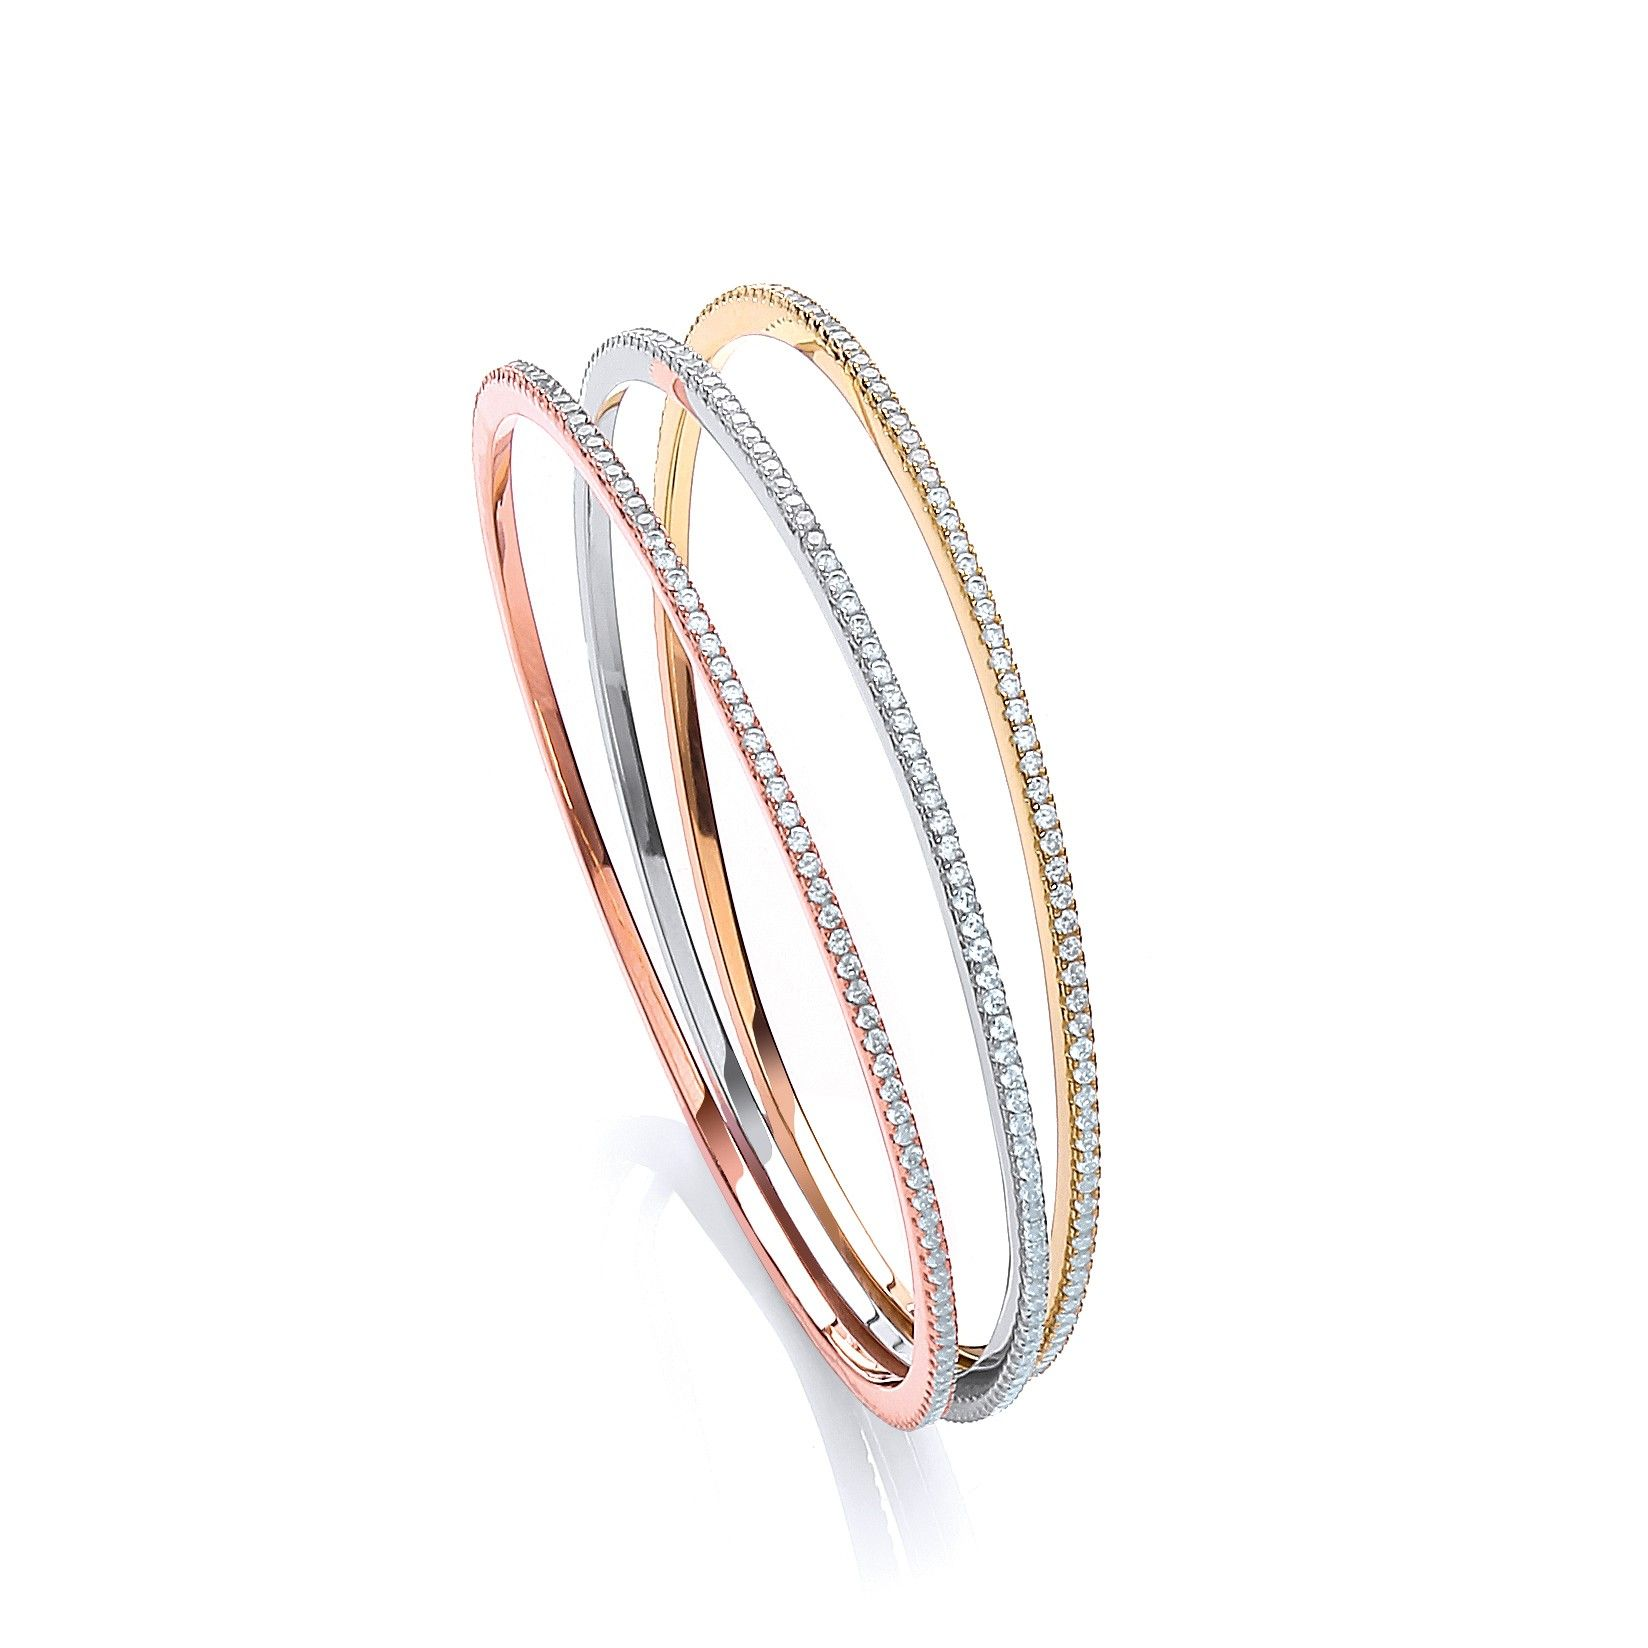 Multi-Colour Coated Sterling Silver Bangle Set With White CZs